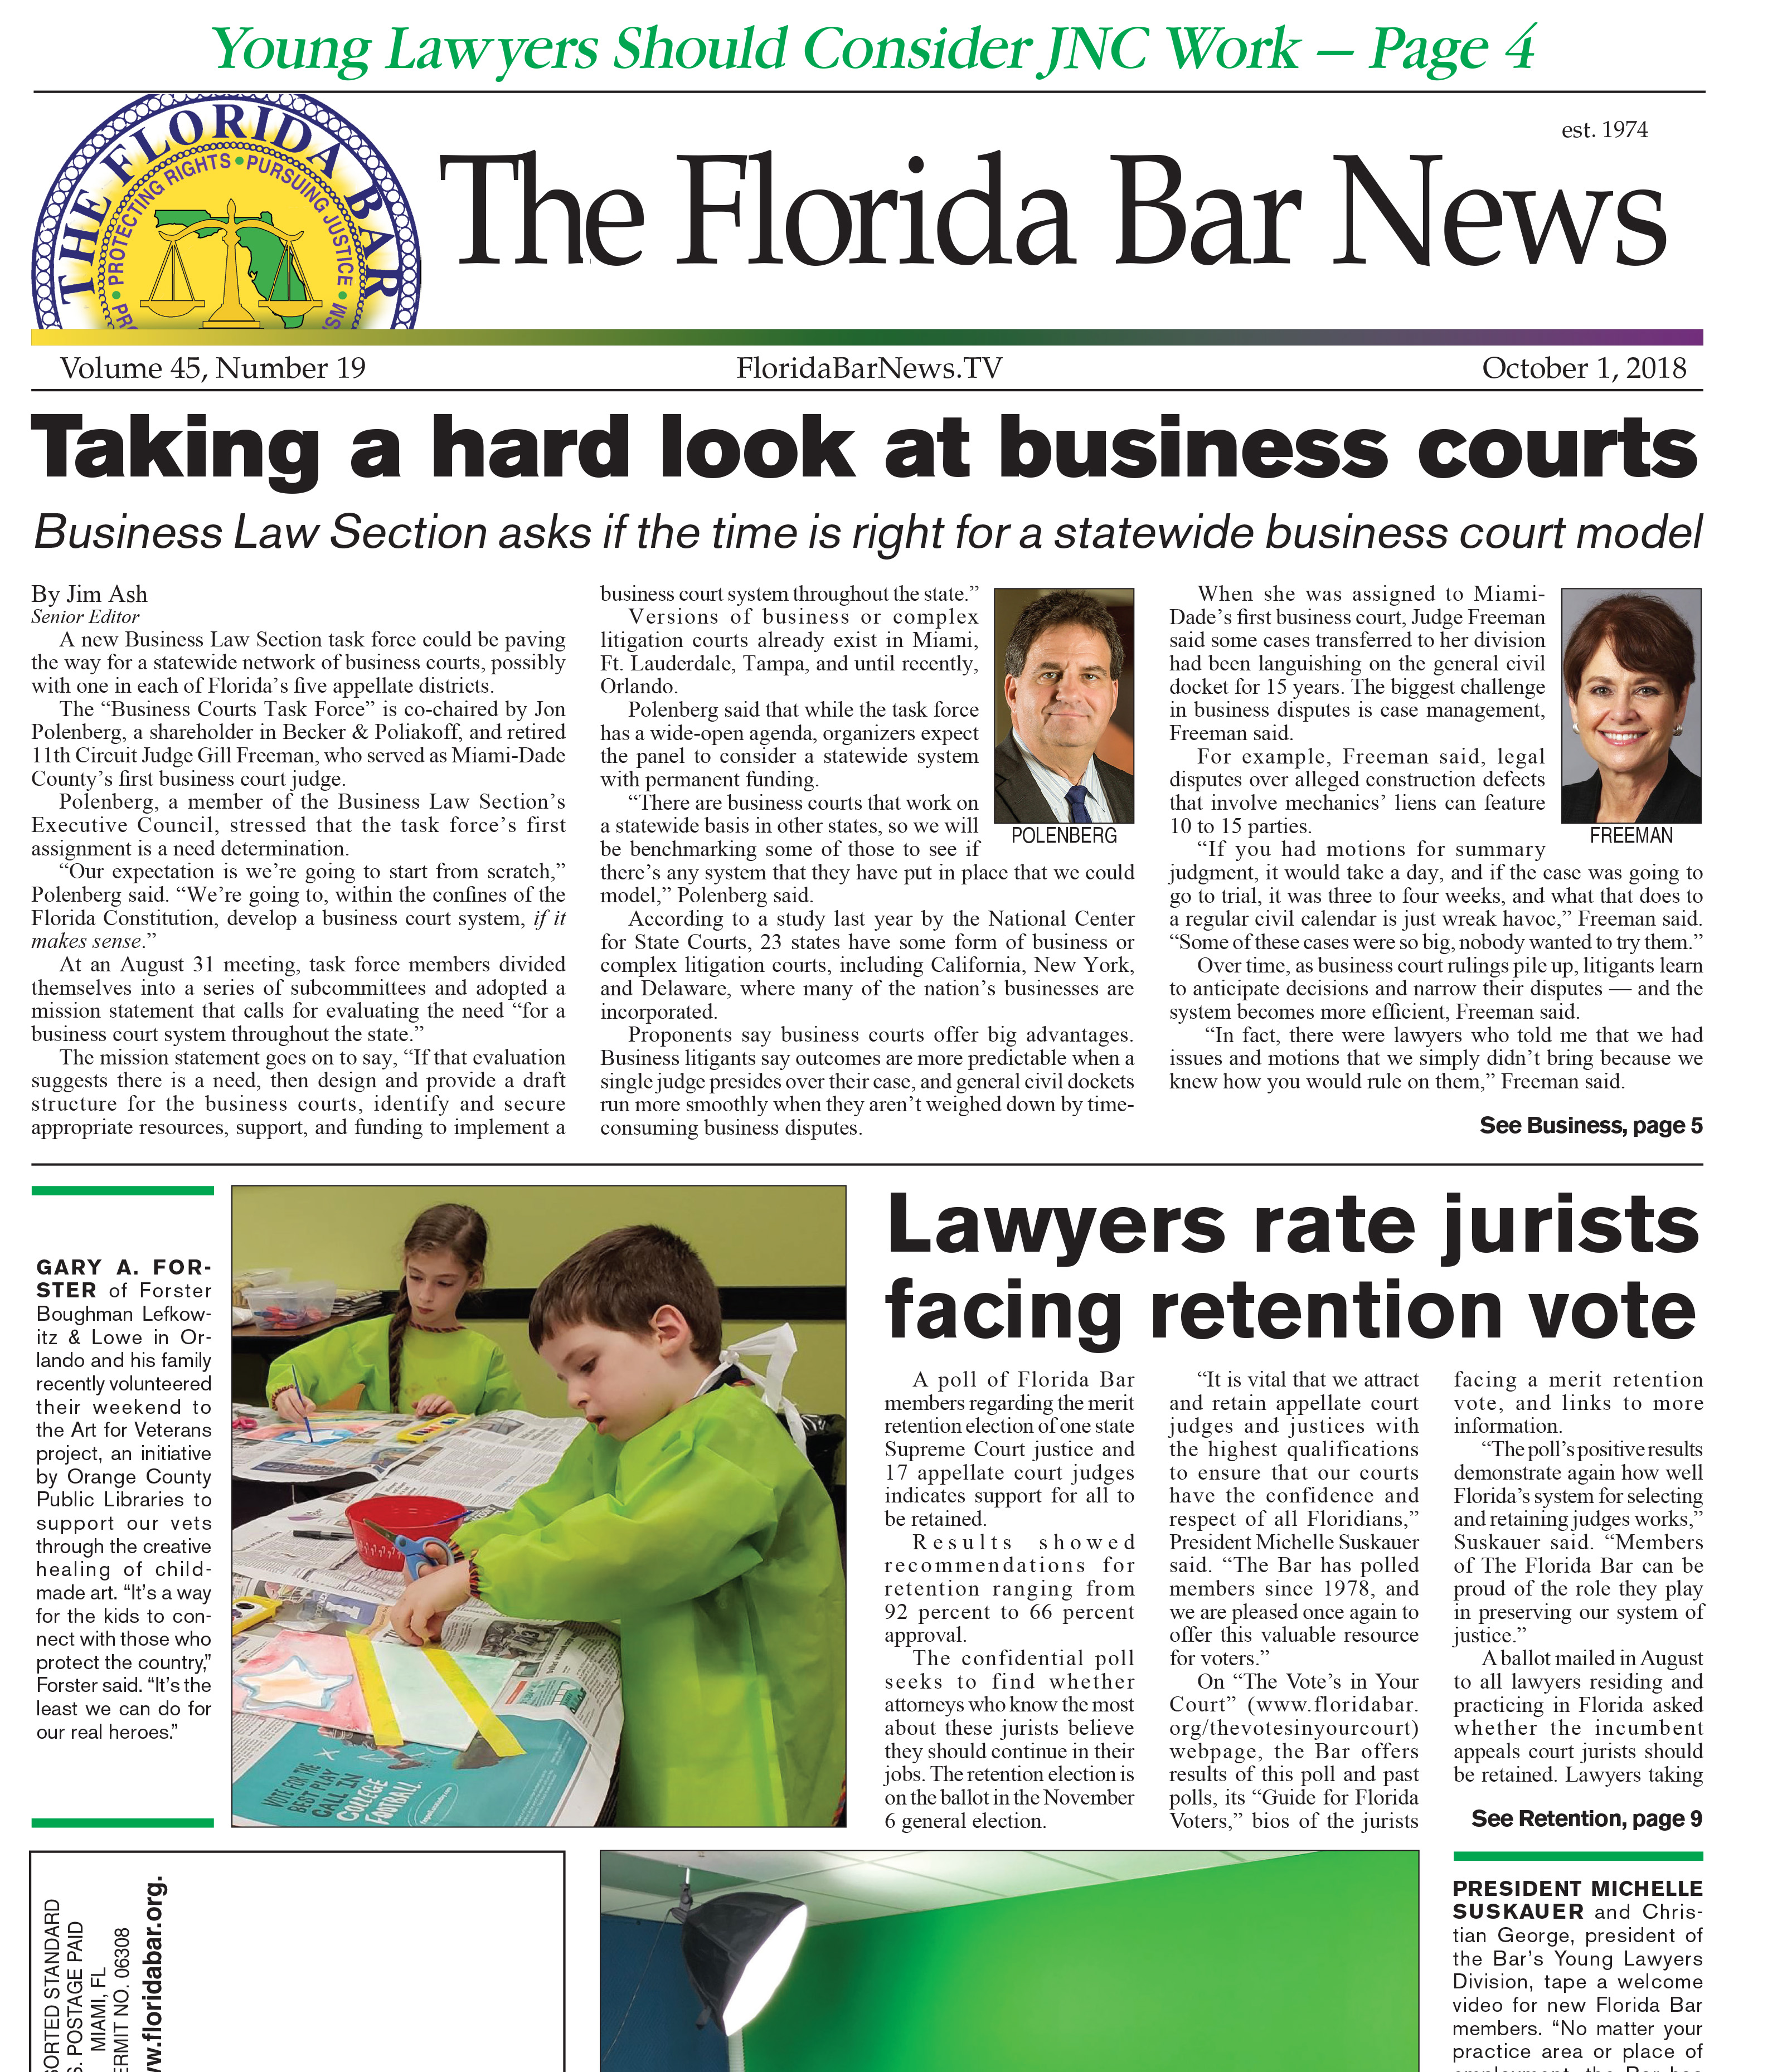 The Oct. 1 Bar News: Business Law Section study, lawyers rating jurists, young lawyers seeking appointment to JNCs